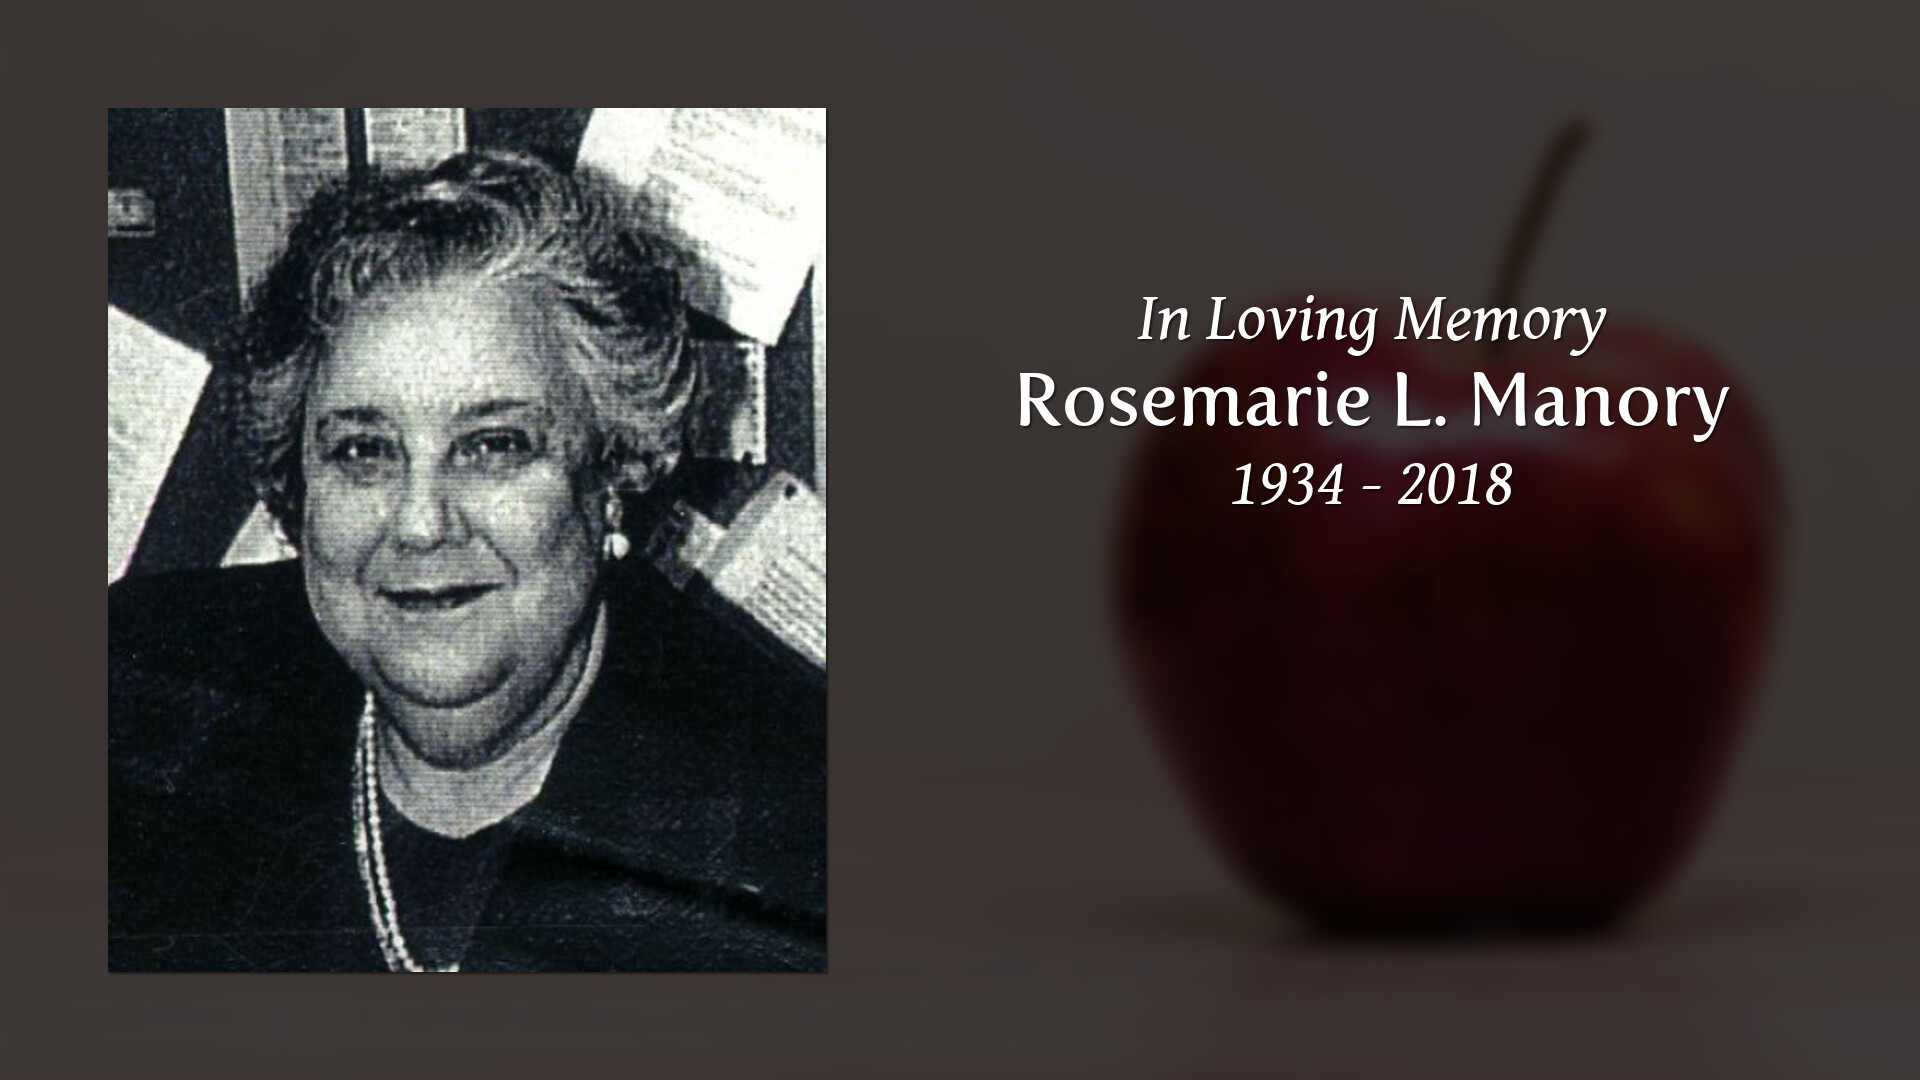 Obituary For Rosemarie L Schillaci Manory Bryce Funeral Home